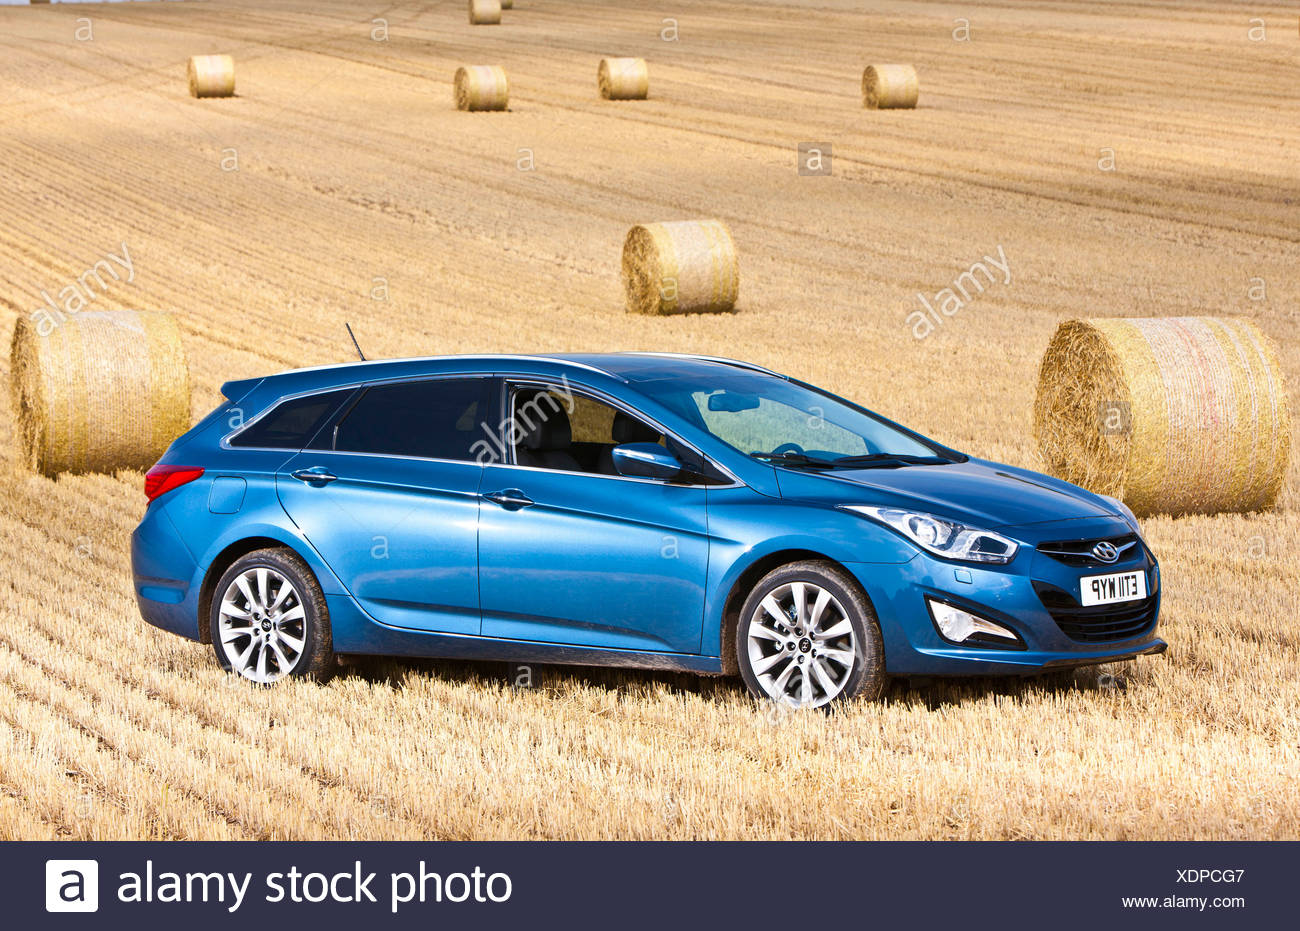 Hyundai i40, large family car, in a hayfield, Southampton, - Stock Image